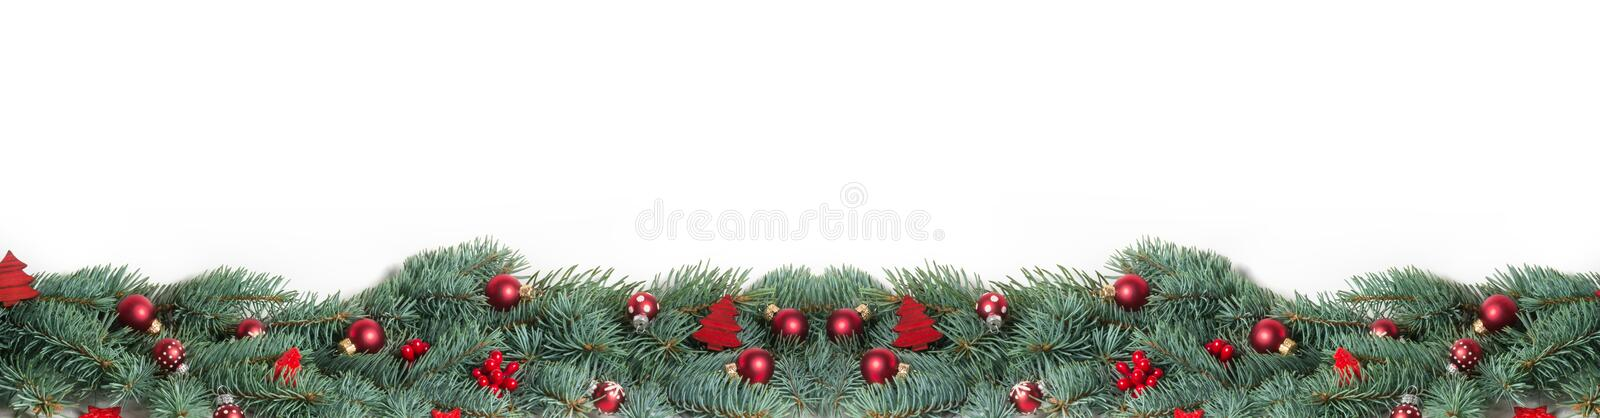 Christmas Background, Banner stock image